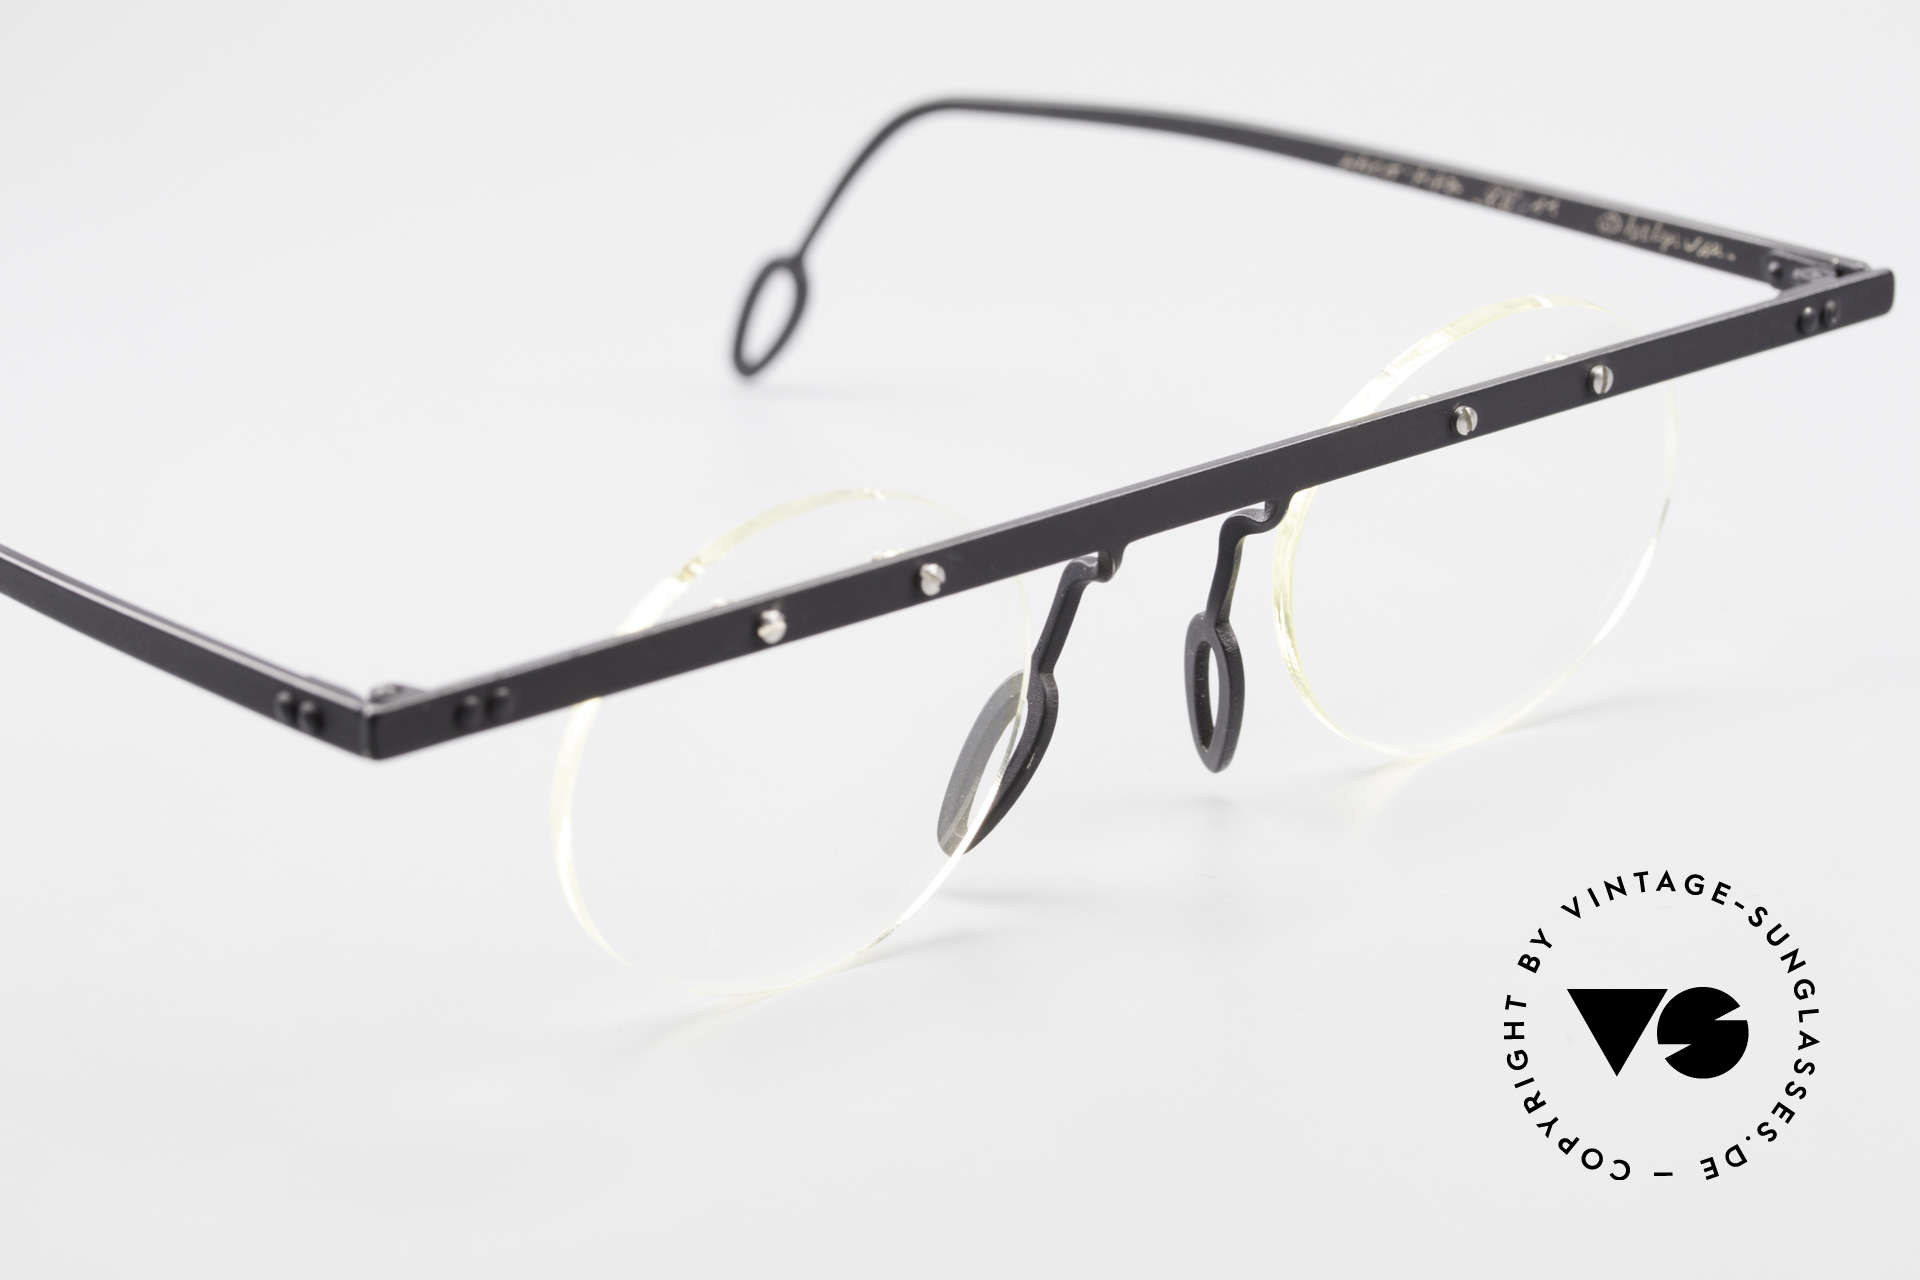 Theo Belgium Tita VII 11 Vintage Titanium Eyeglasses, an old, unworn THEO original and NO RETRO EYEWEAR, Made for Men and Women